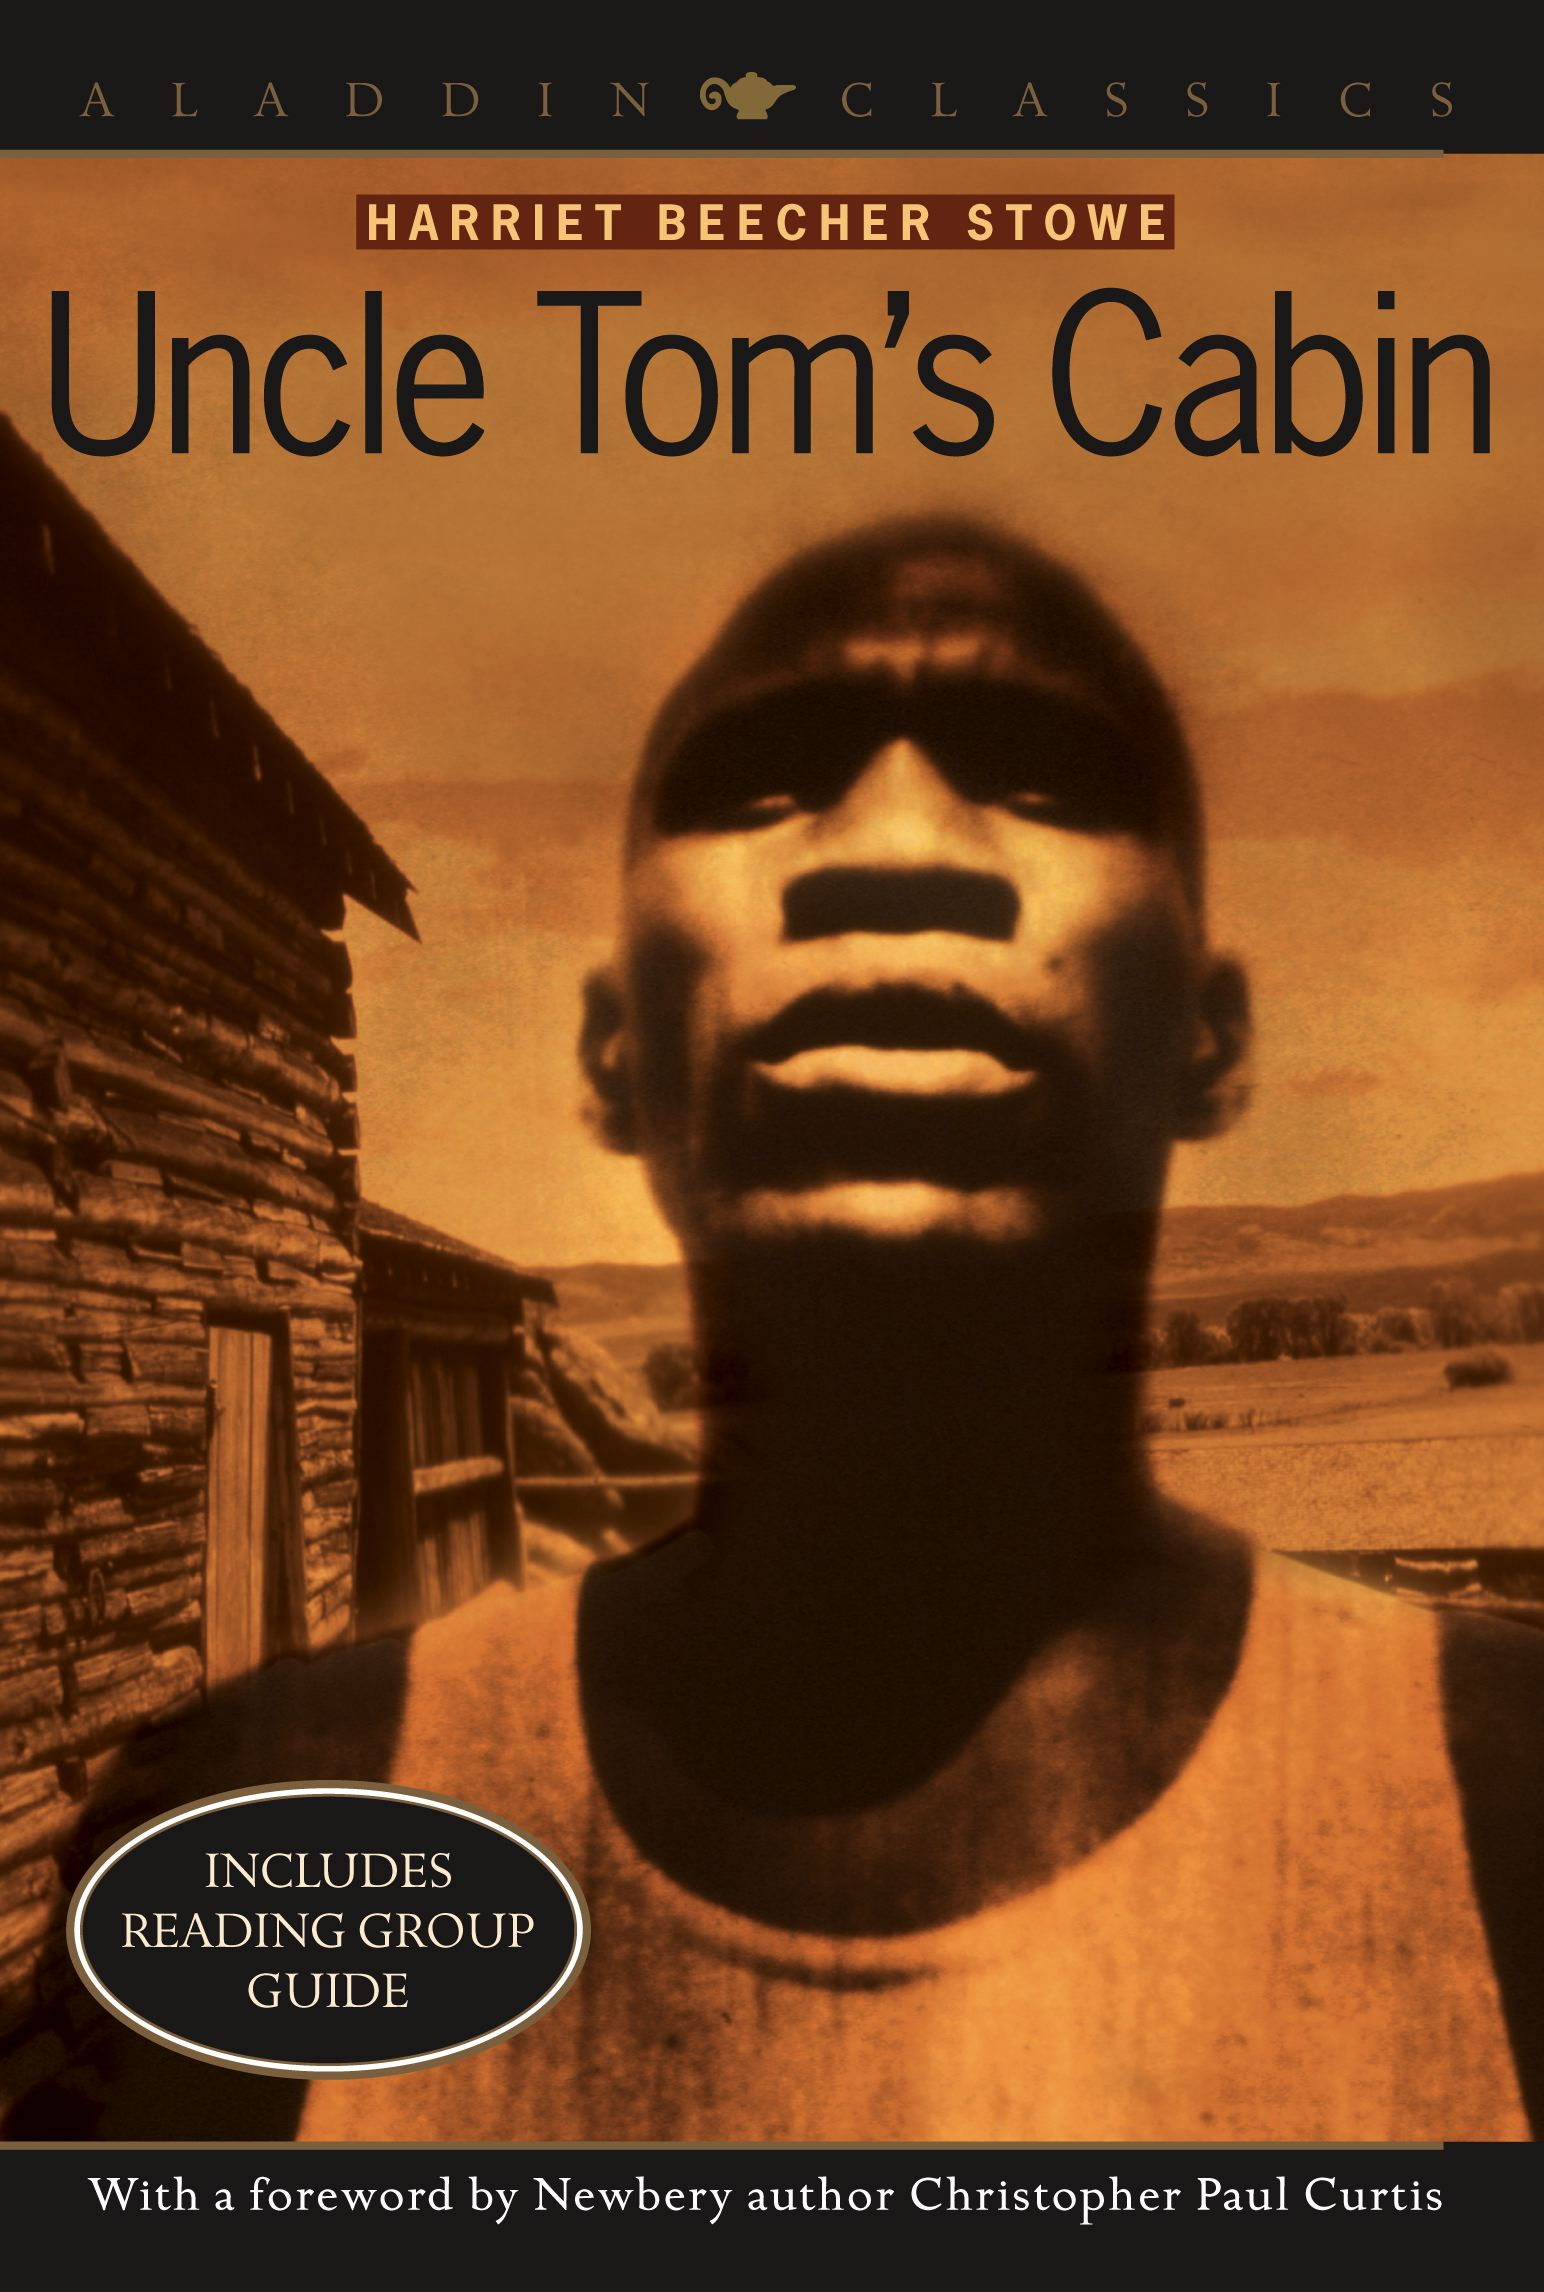 Marvelous photograph of Uncle Tom's Cabin by Harriet Beecher Stowe and Christopher Paul Curtis  with #BA7611 color and 1544x2292 pixels